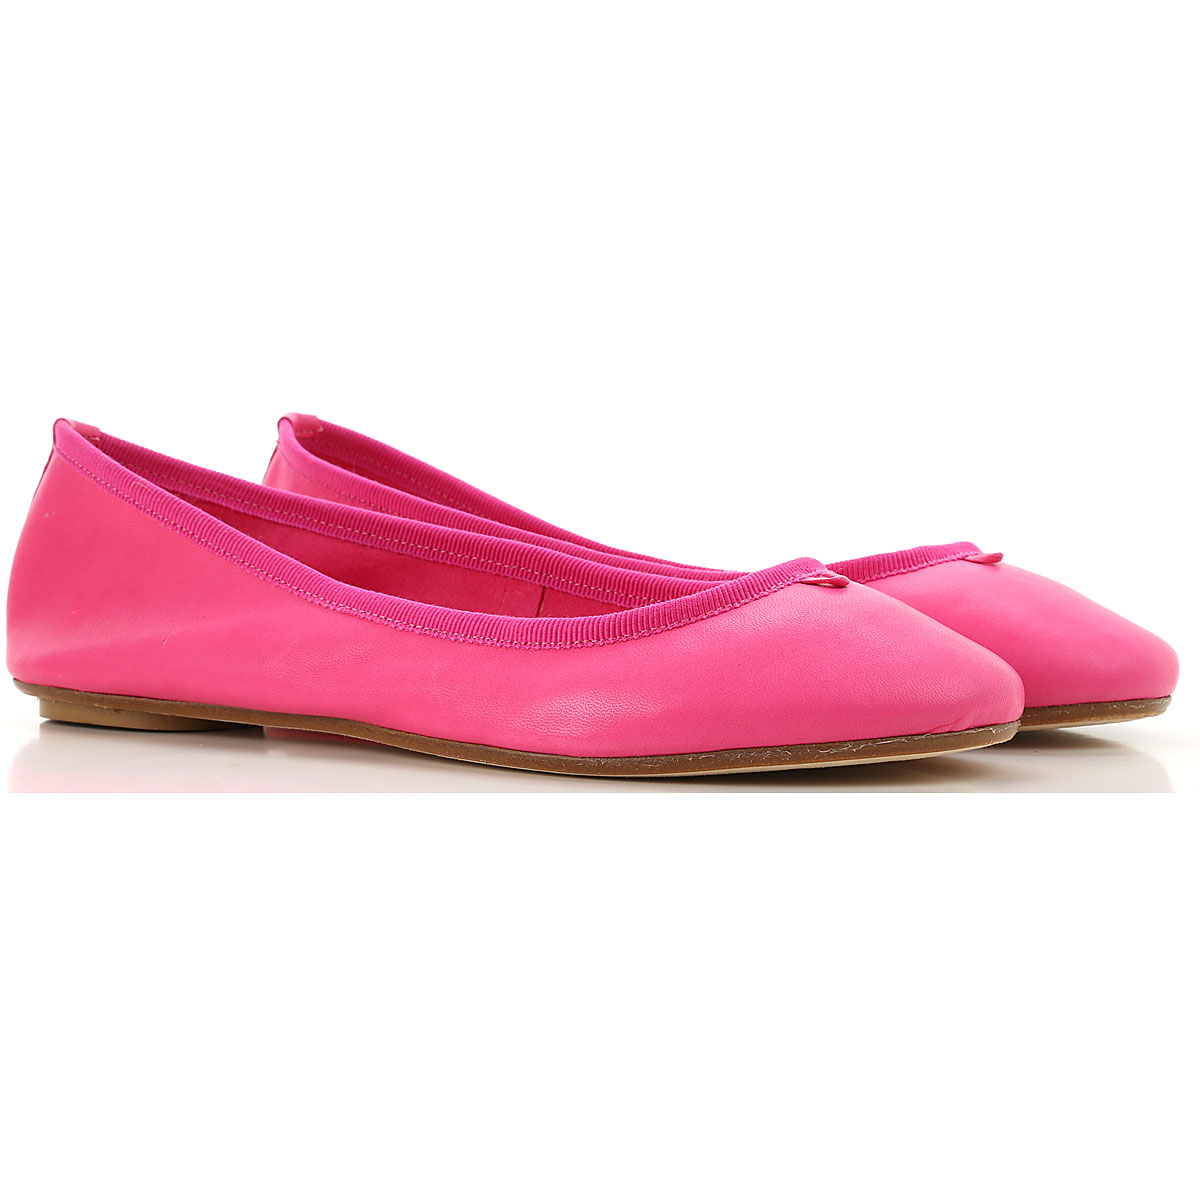 Anna Baiguera Ballet Flats Ballerina Shoes for Women On Sale in Outlet, fuxia, Leather, 2019, 10 7 8 9